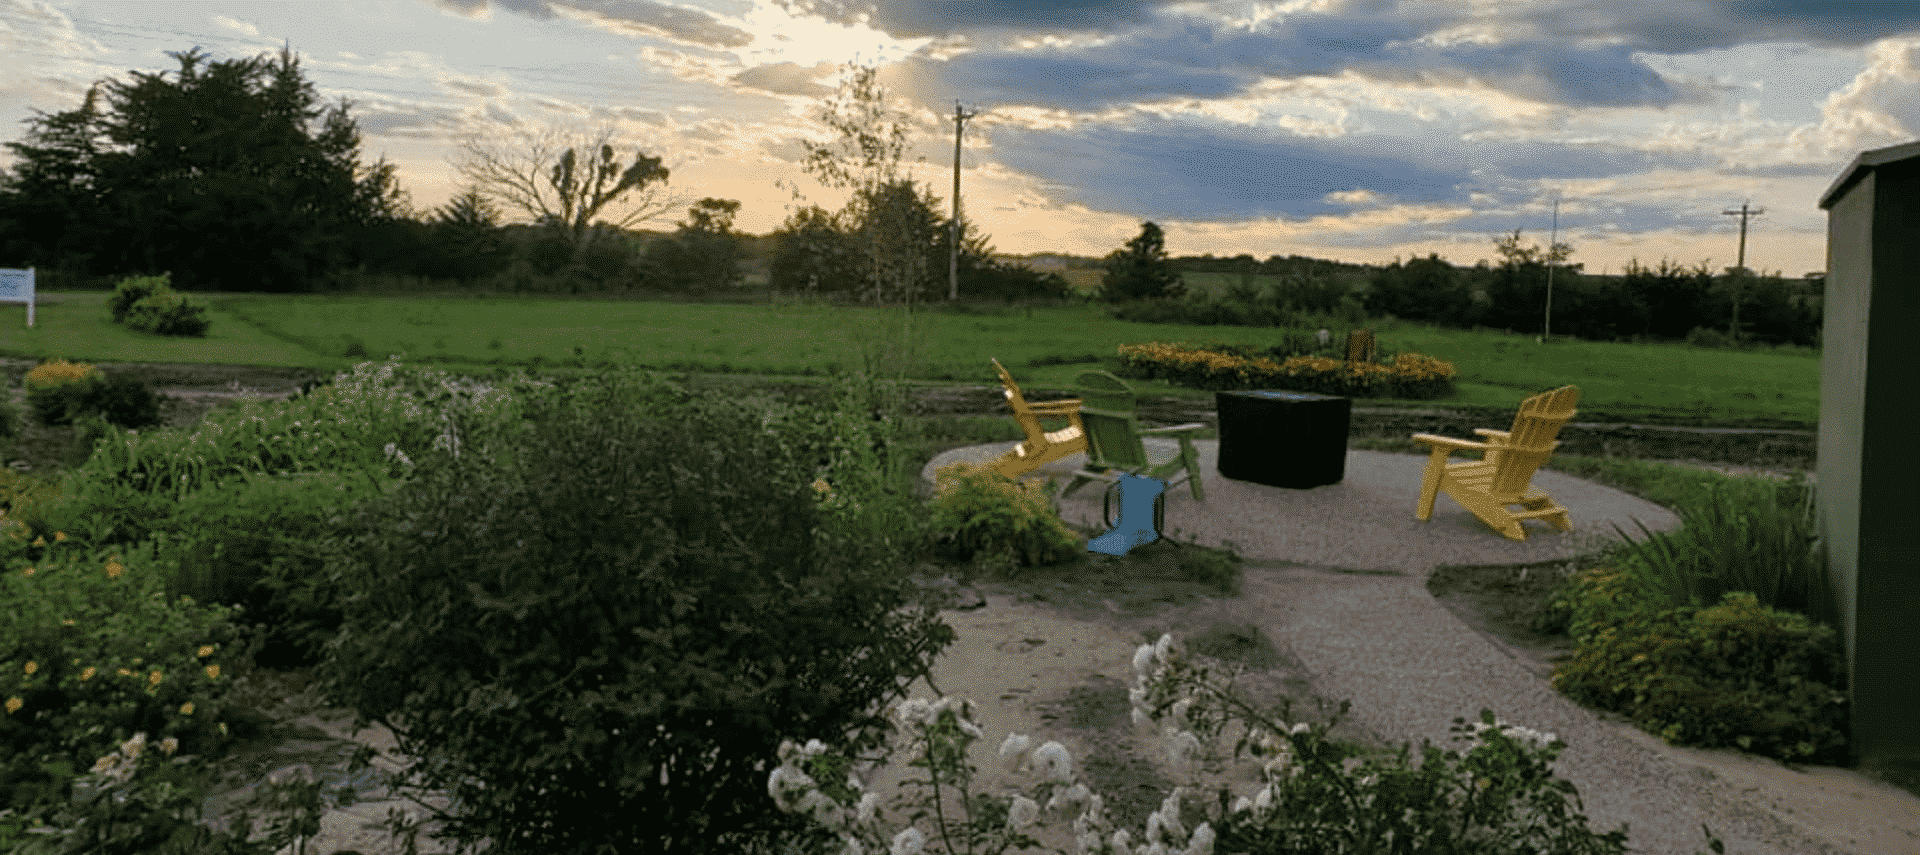 Garden with a circle patio and chairs with an open horizon